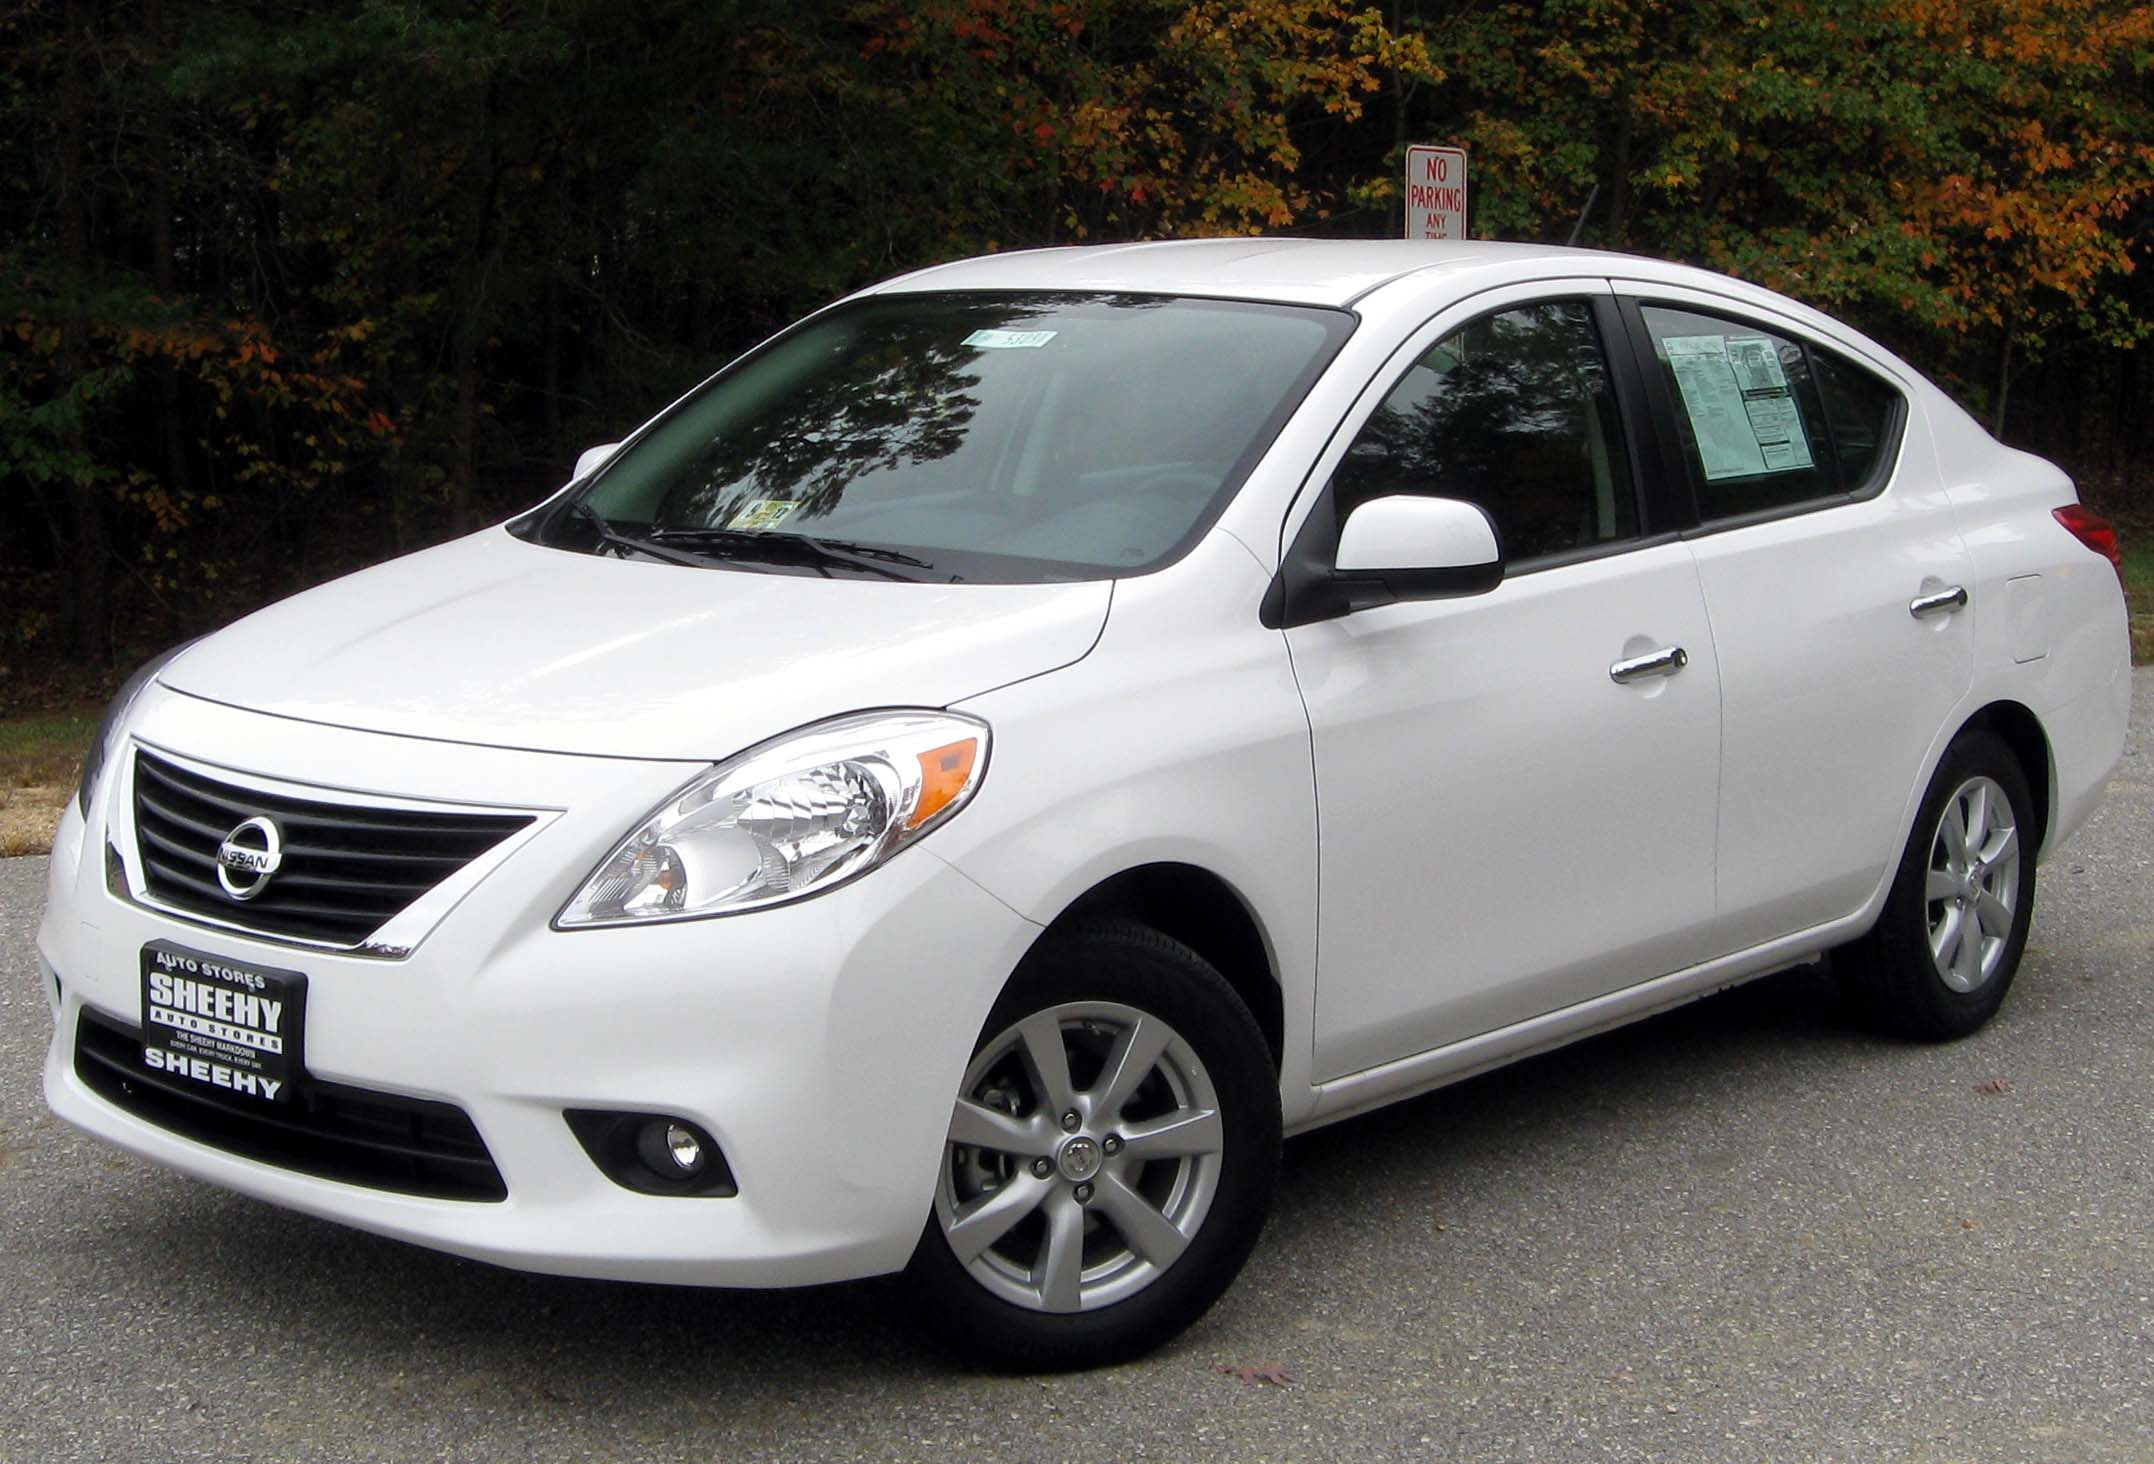 nissan versa archives the truth about cars. Black Bedroom Furniture Sets. Home Design Ideas